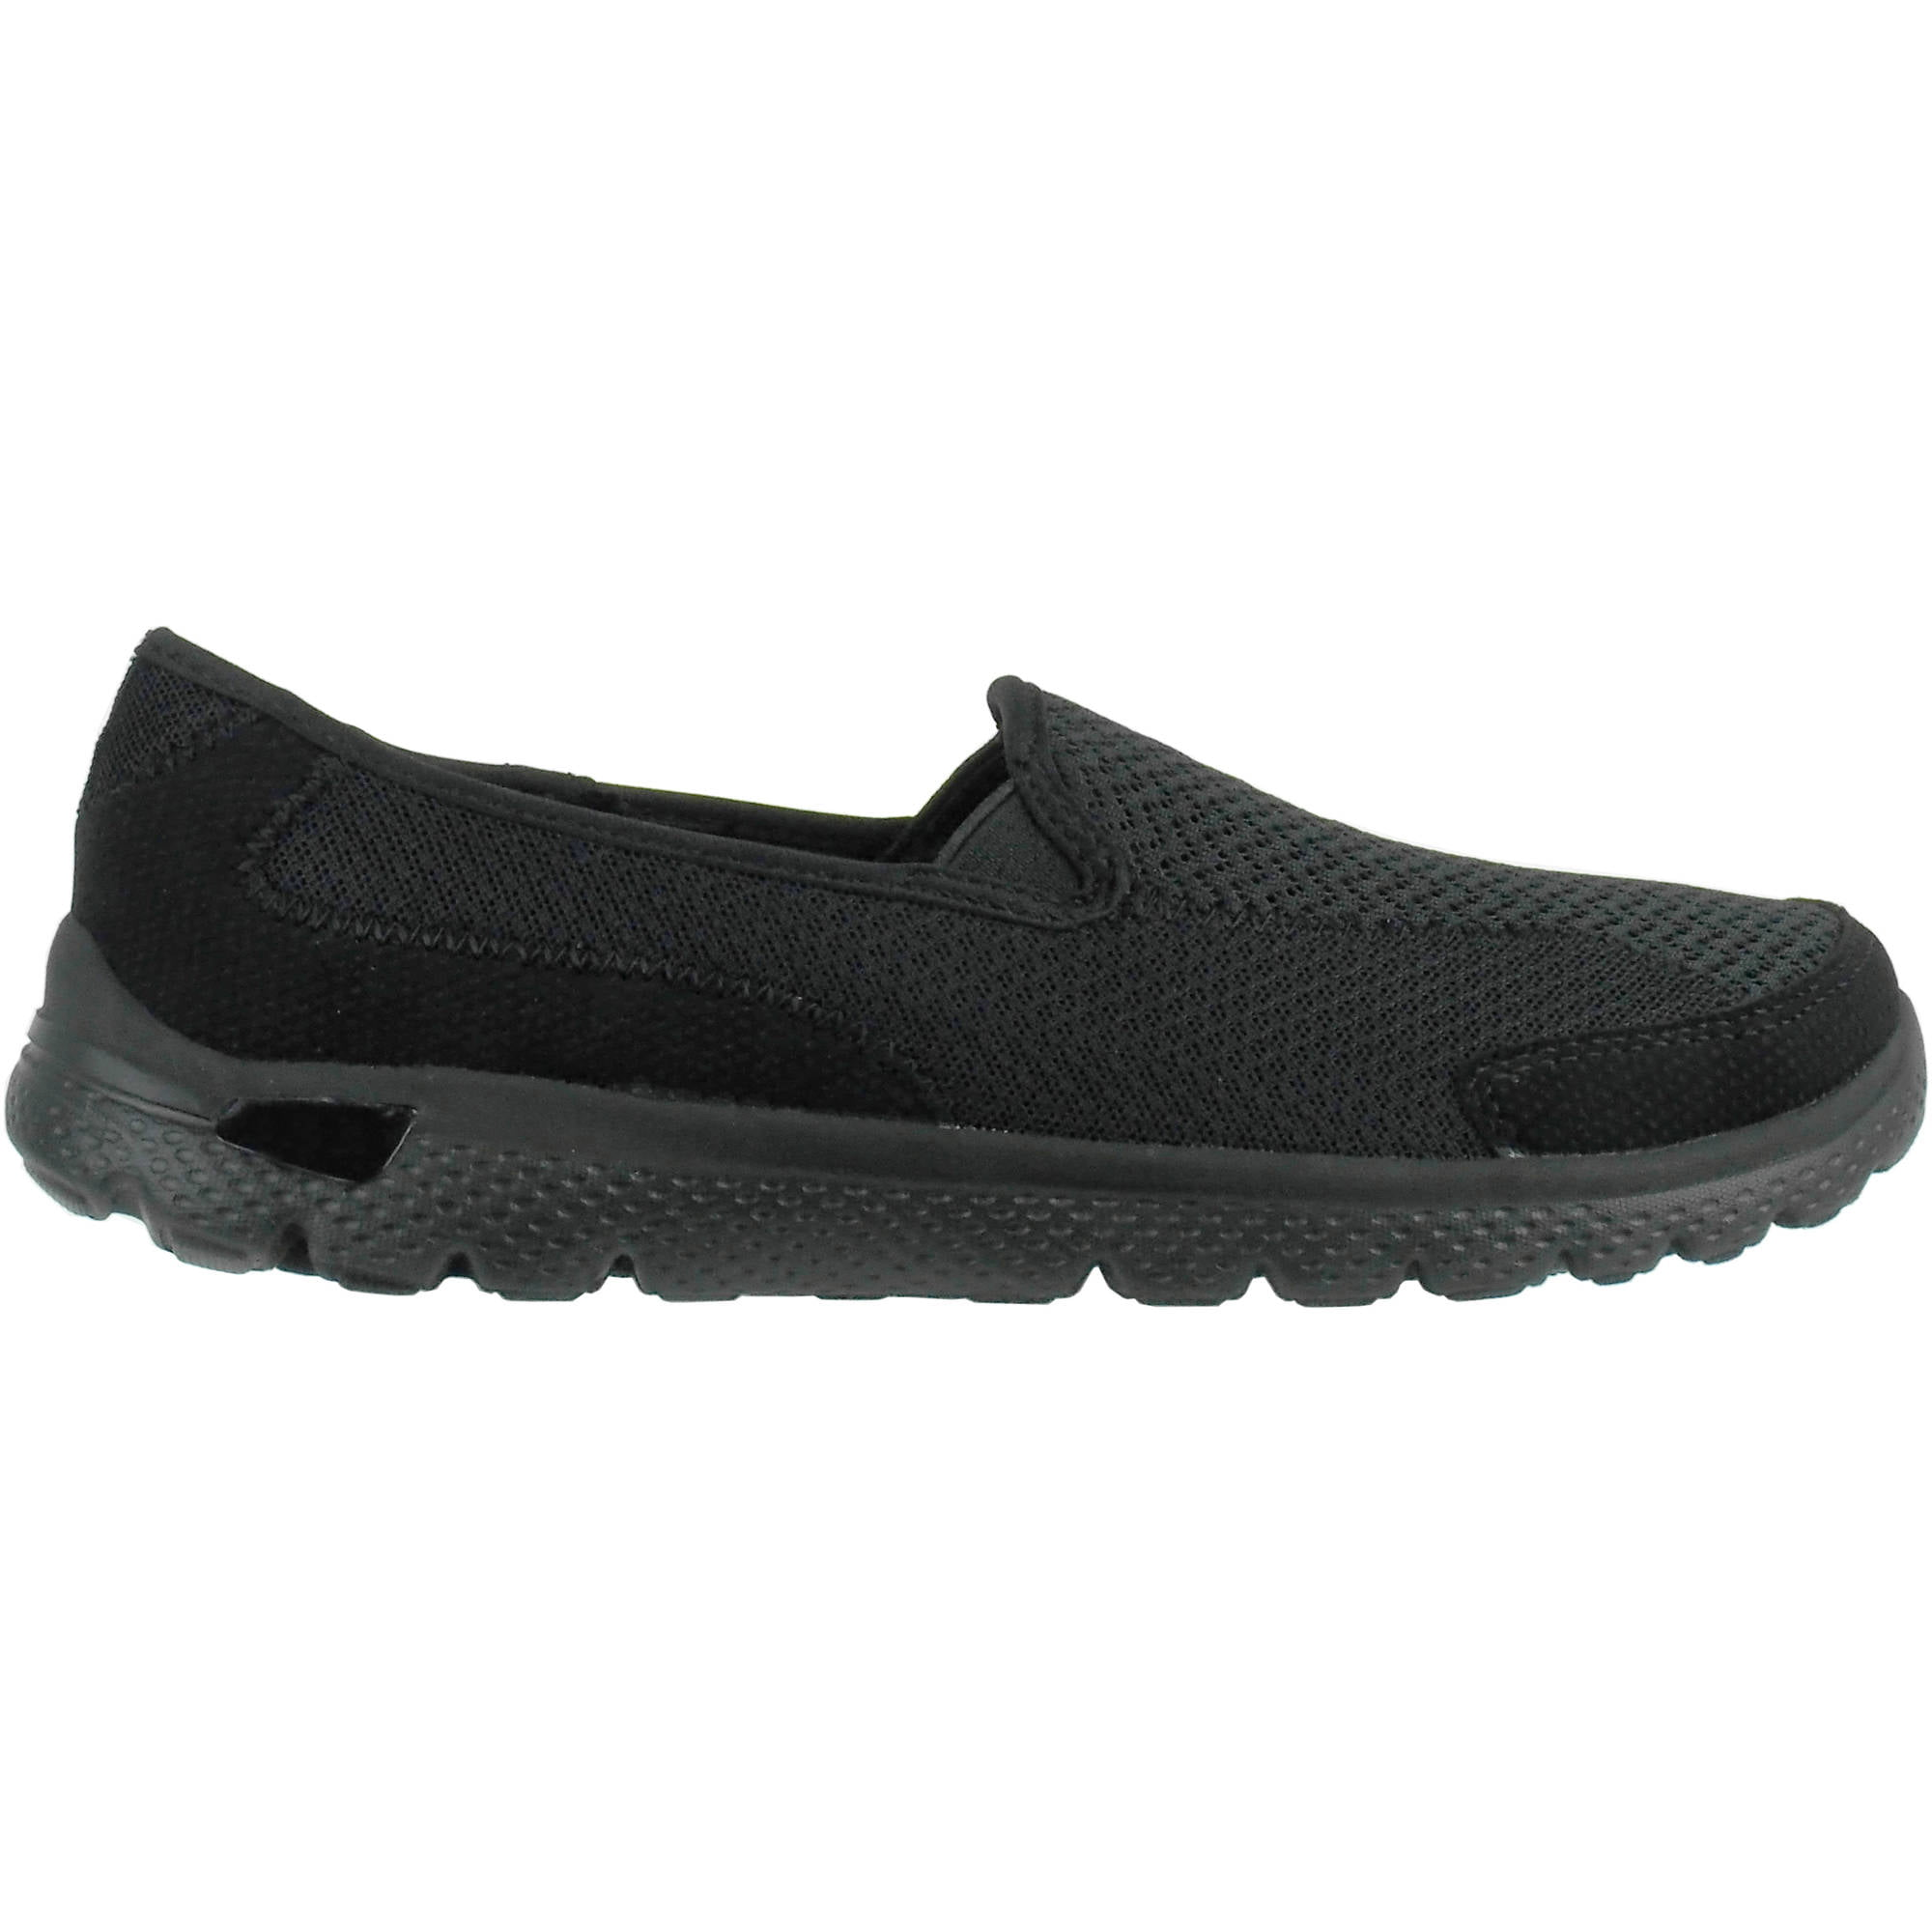 Danskin Now - Danskin Now Women's Memory Foam Slip-on Athletic Shoe -  Walmart.com